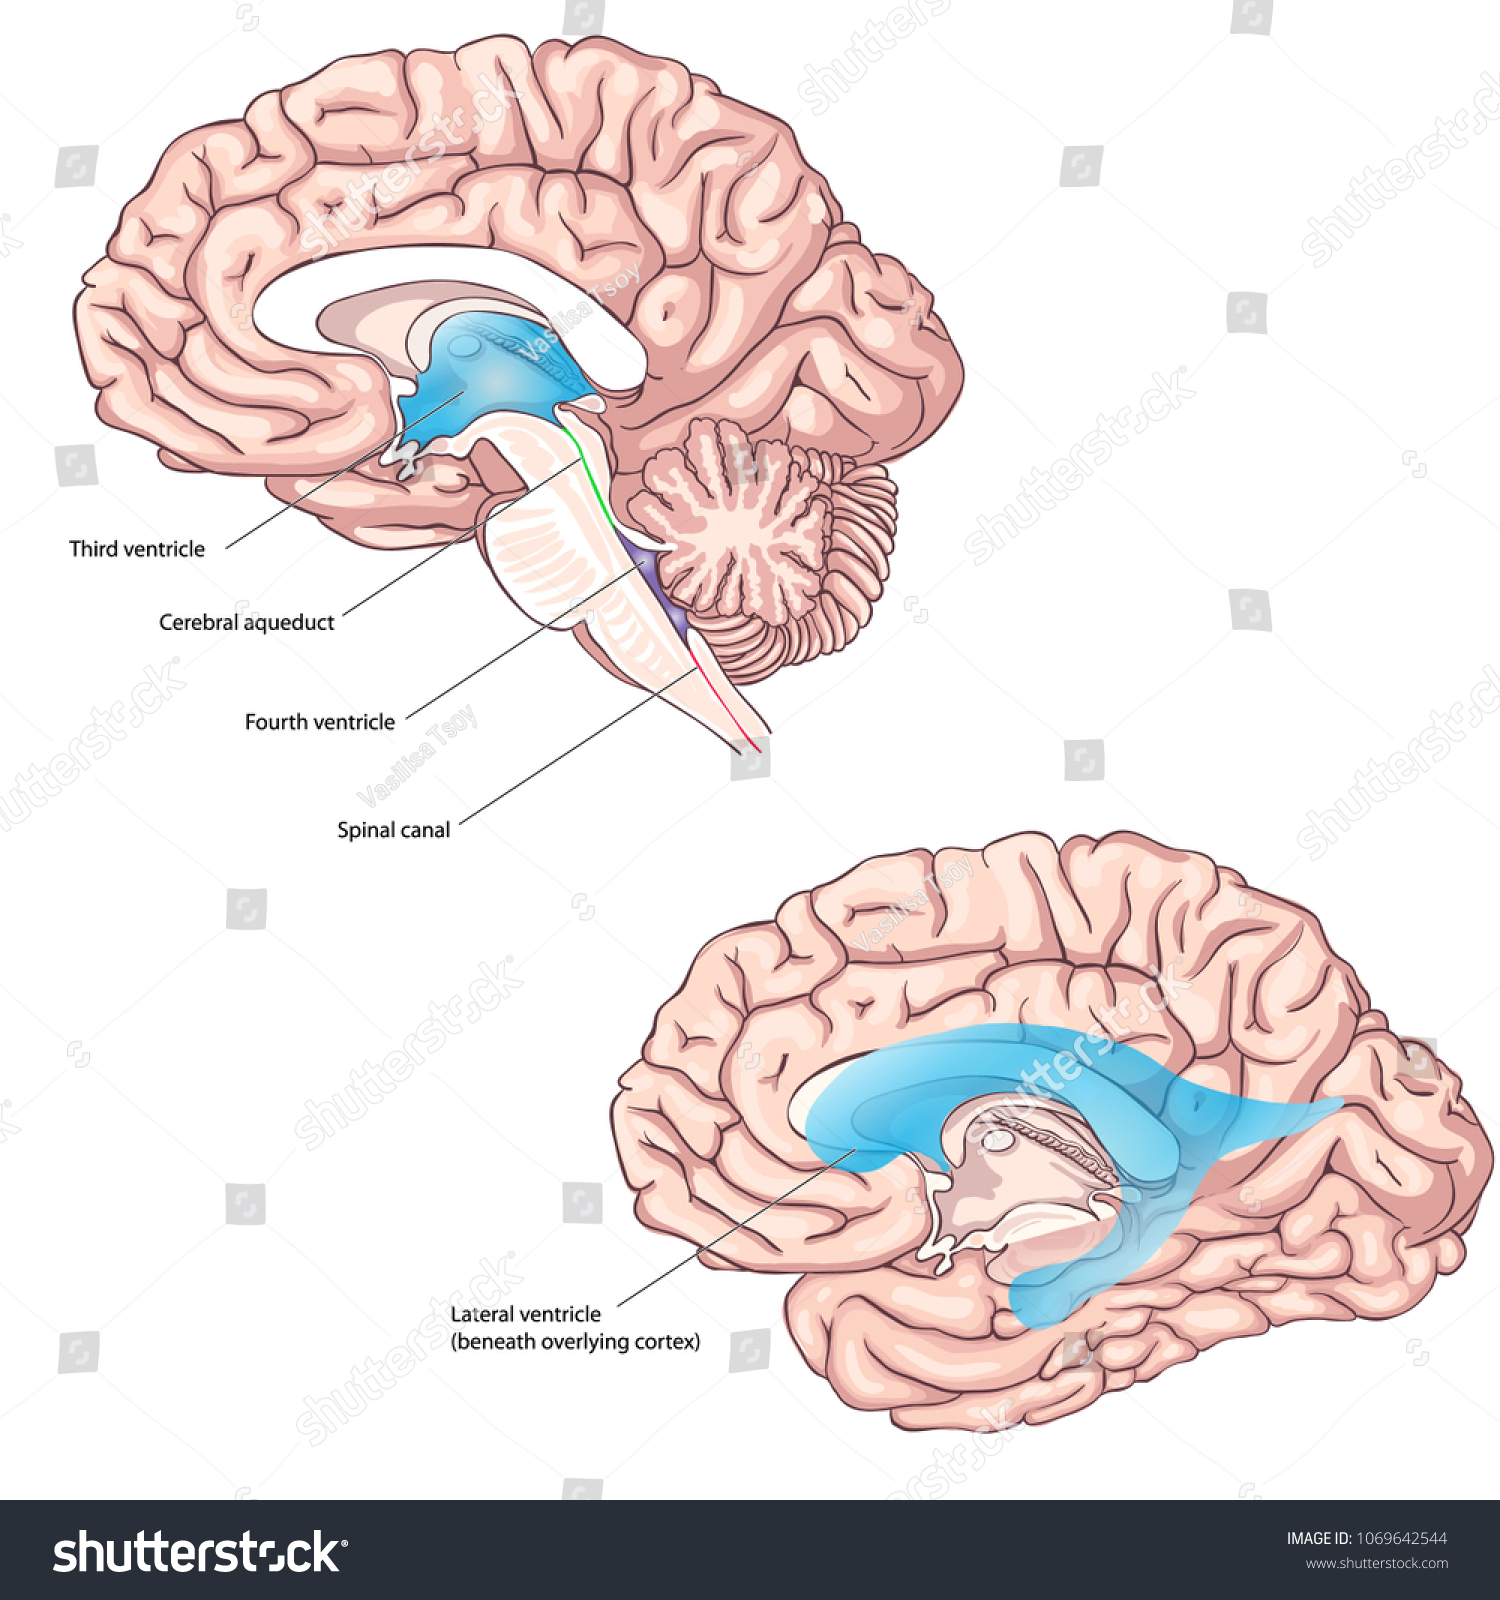 Human Ventricular System Brain Anatomy Third Stock Vector 1069642544 ...